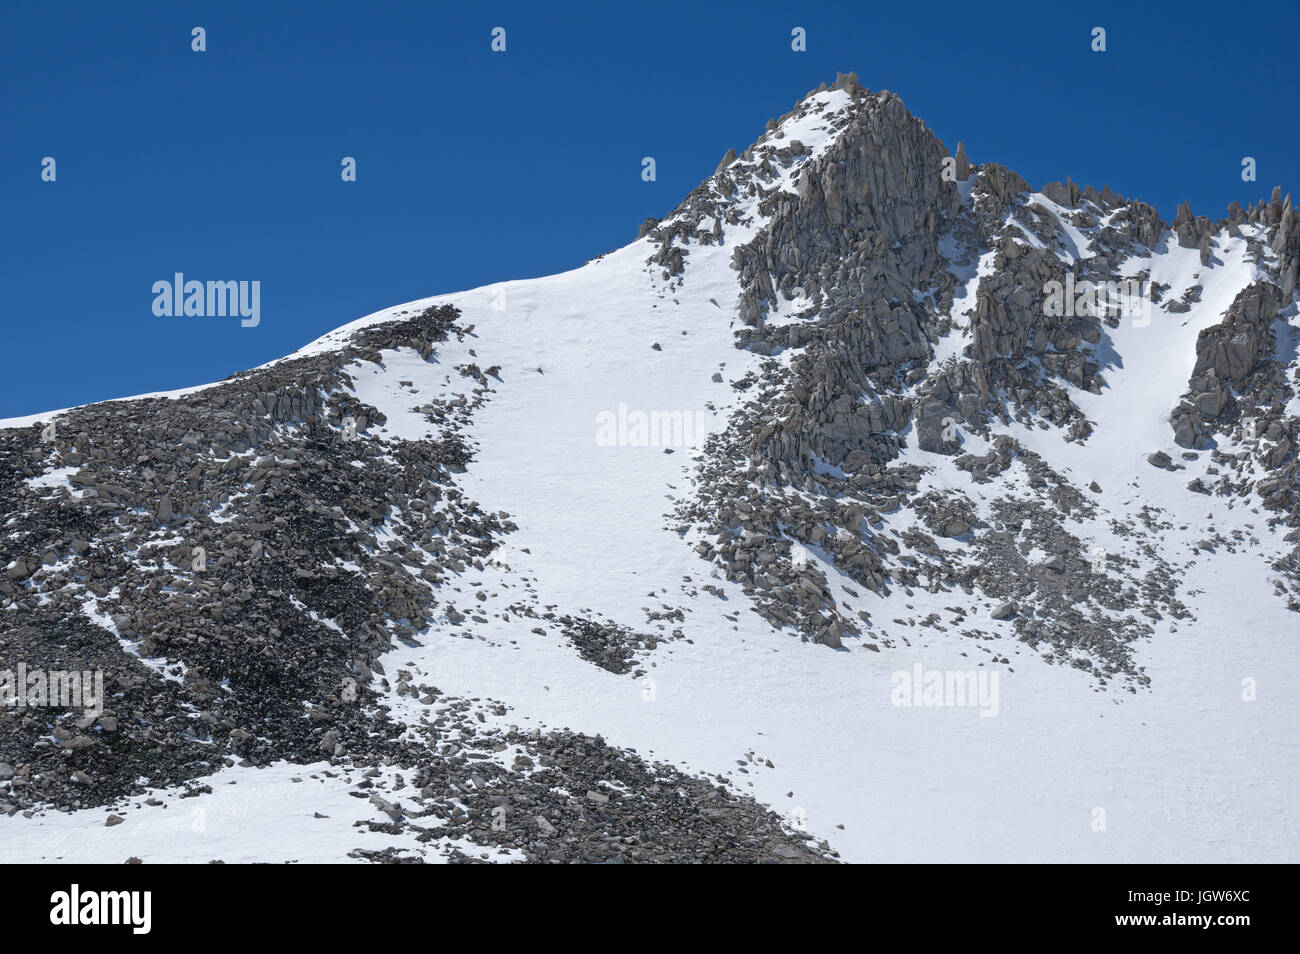 the mountain ridge of Pip-Squeek Spire in the Sierra Nevada Mountains - Stock Image